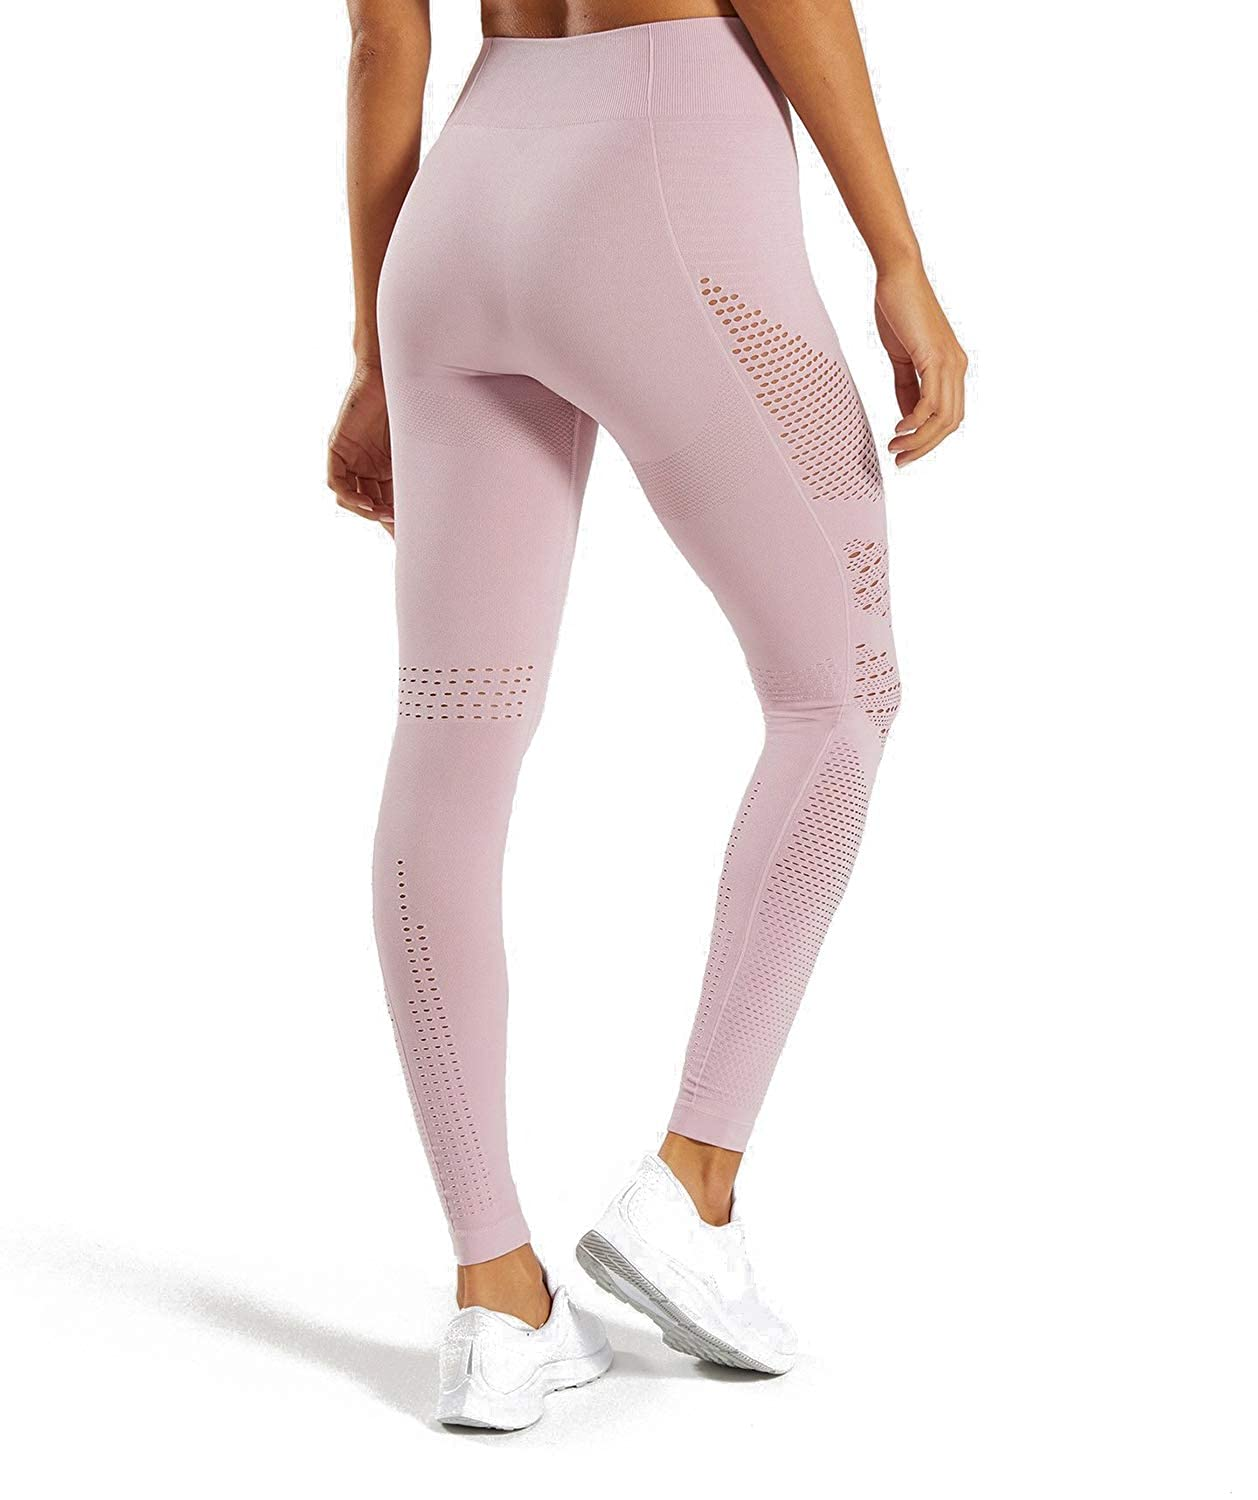 MOYOOGA Mesh Seamless Leggings for Women High Rise Yoga Pants Knit Tights for Workout Gym Athletic Fitness